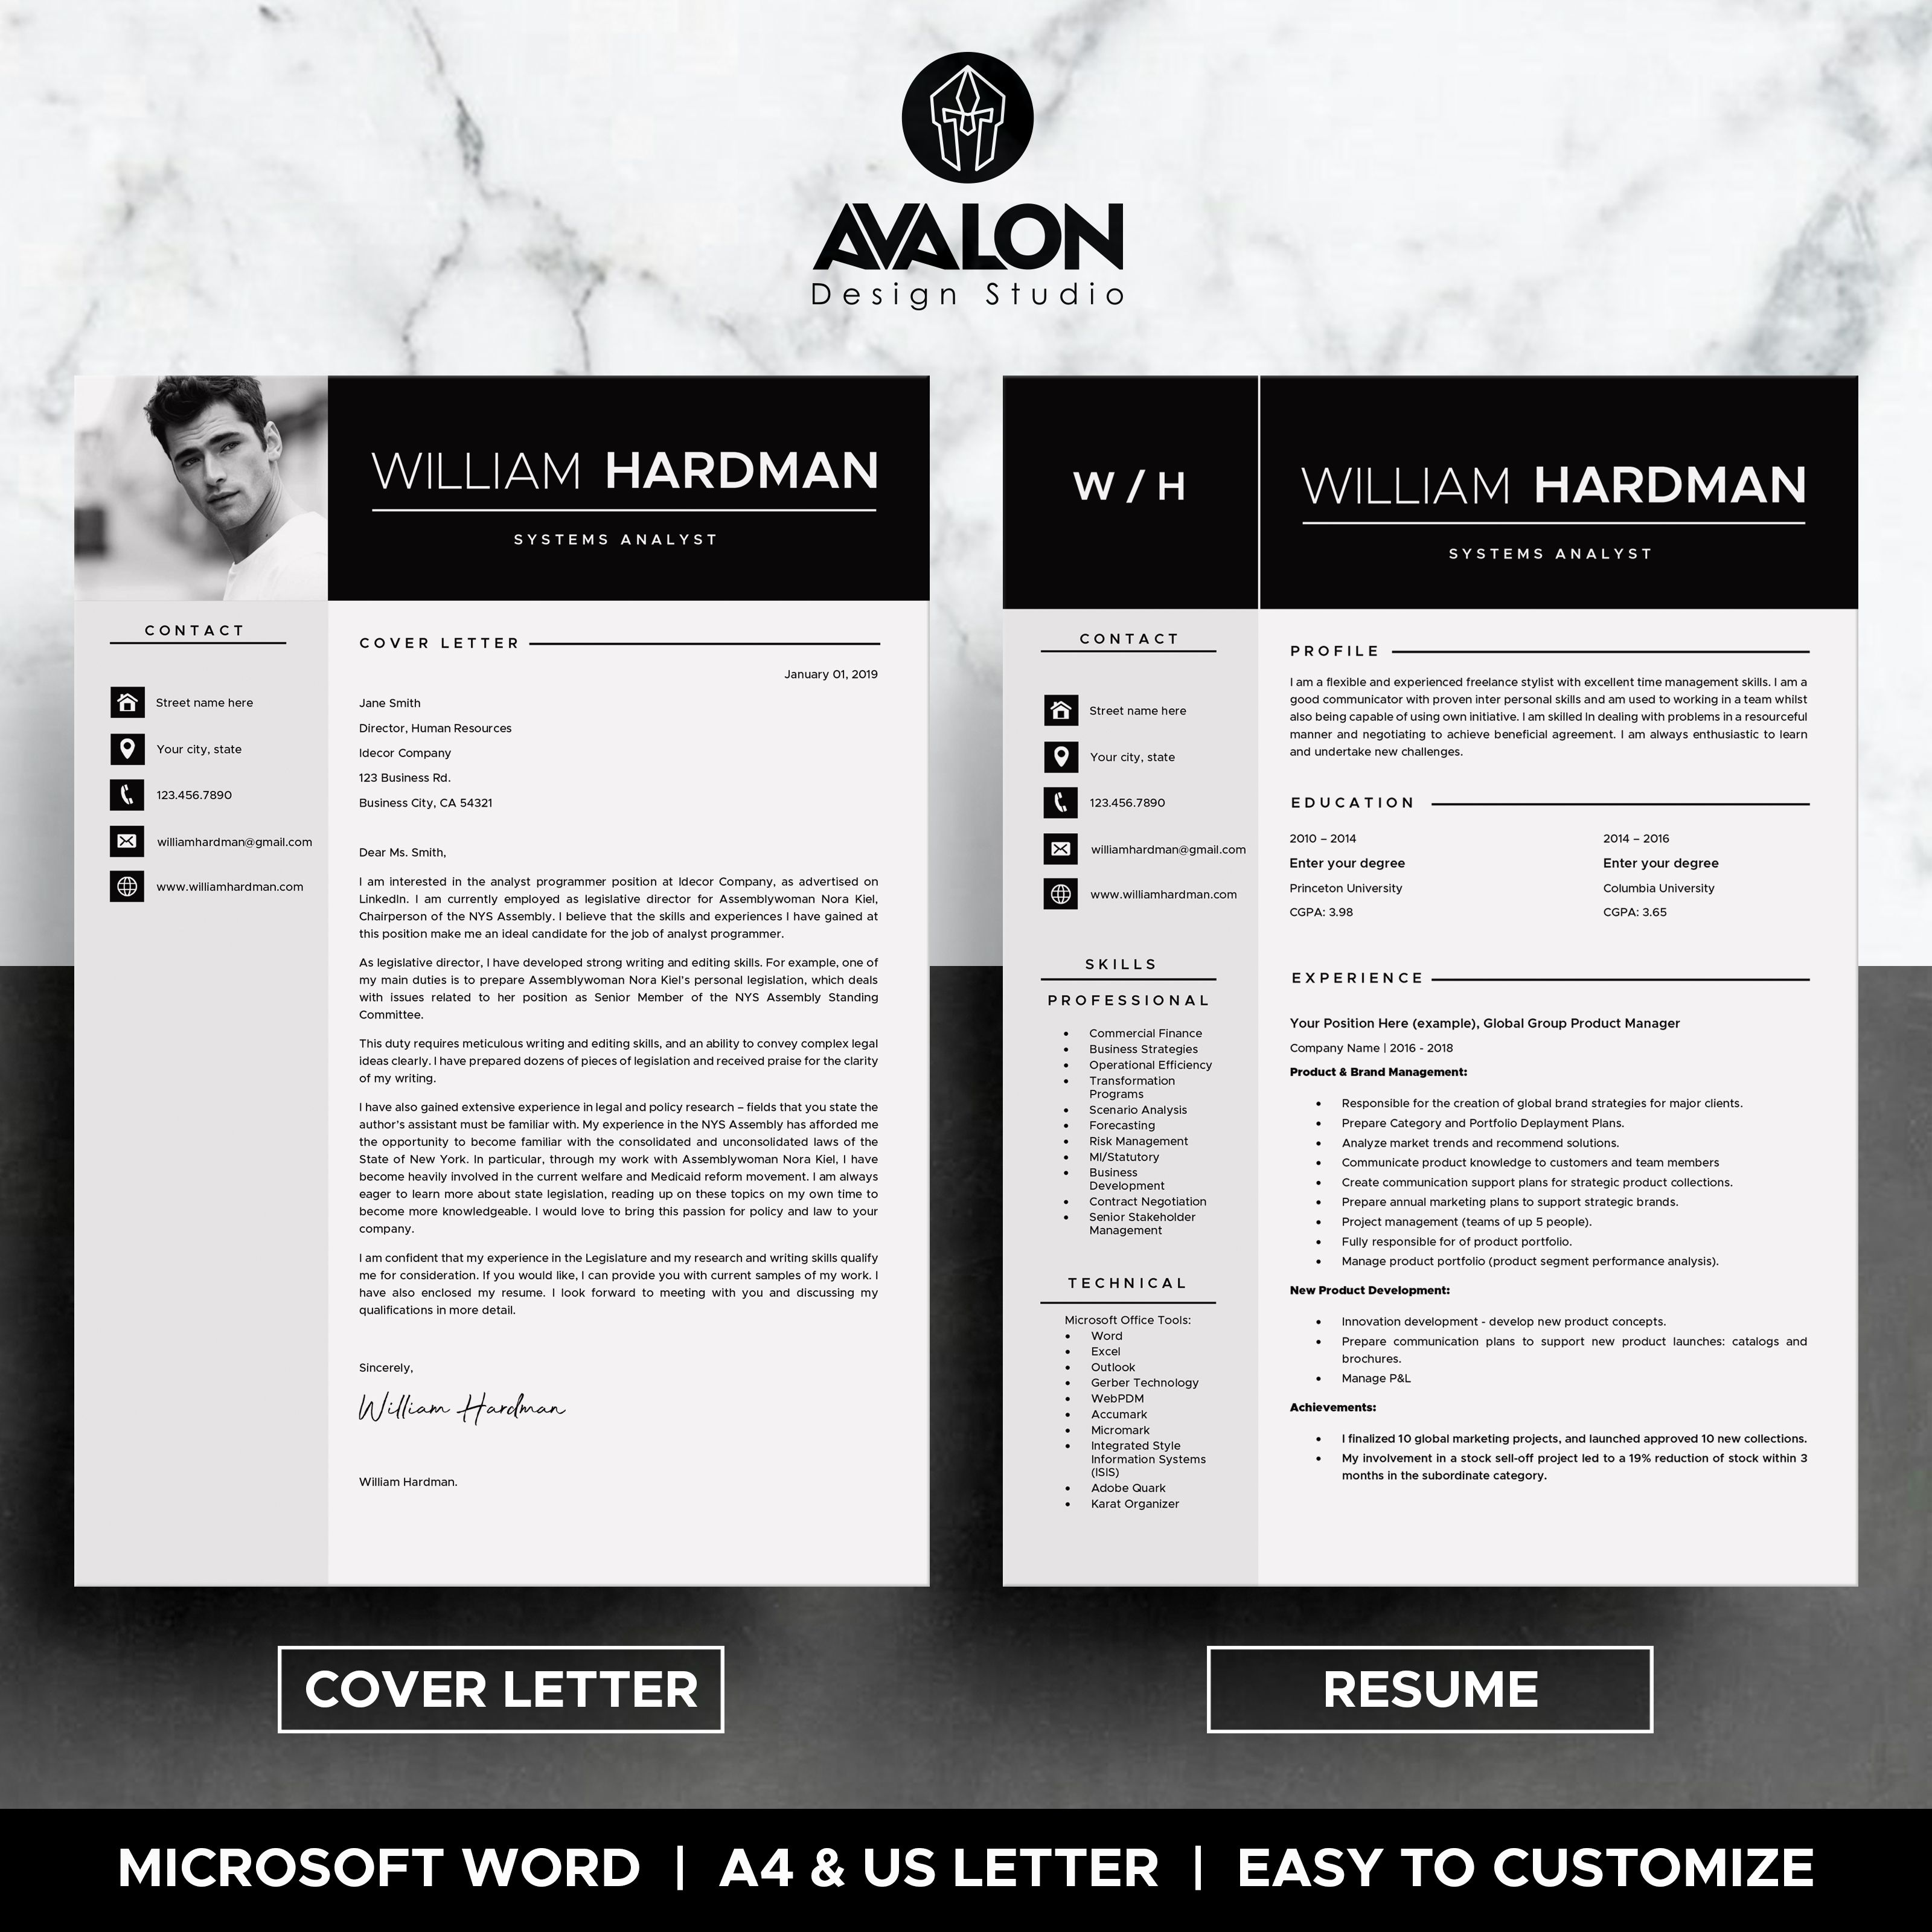 resume template for ms word 4 page professional cv format medical student letter teacher job freshers pdf